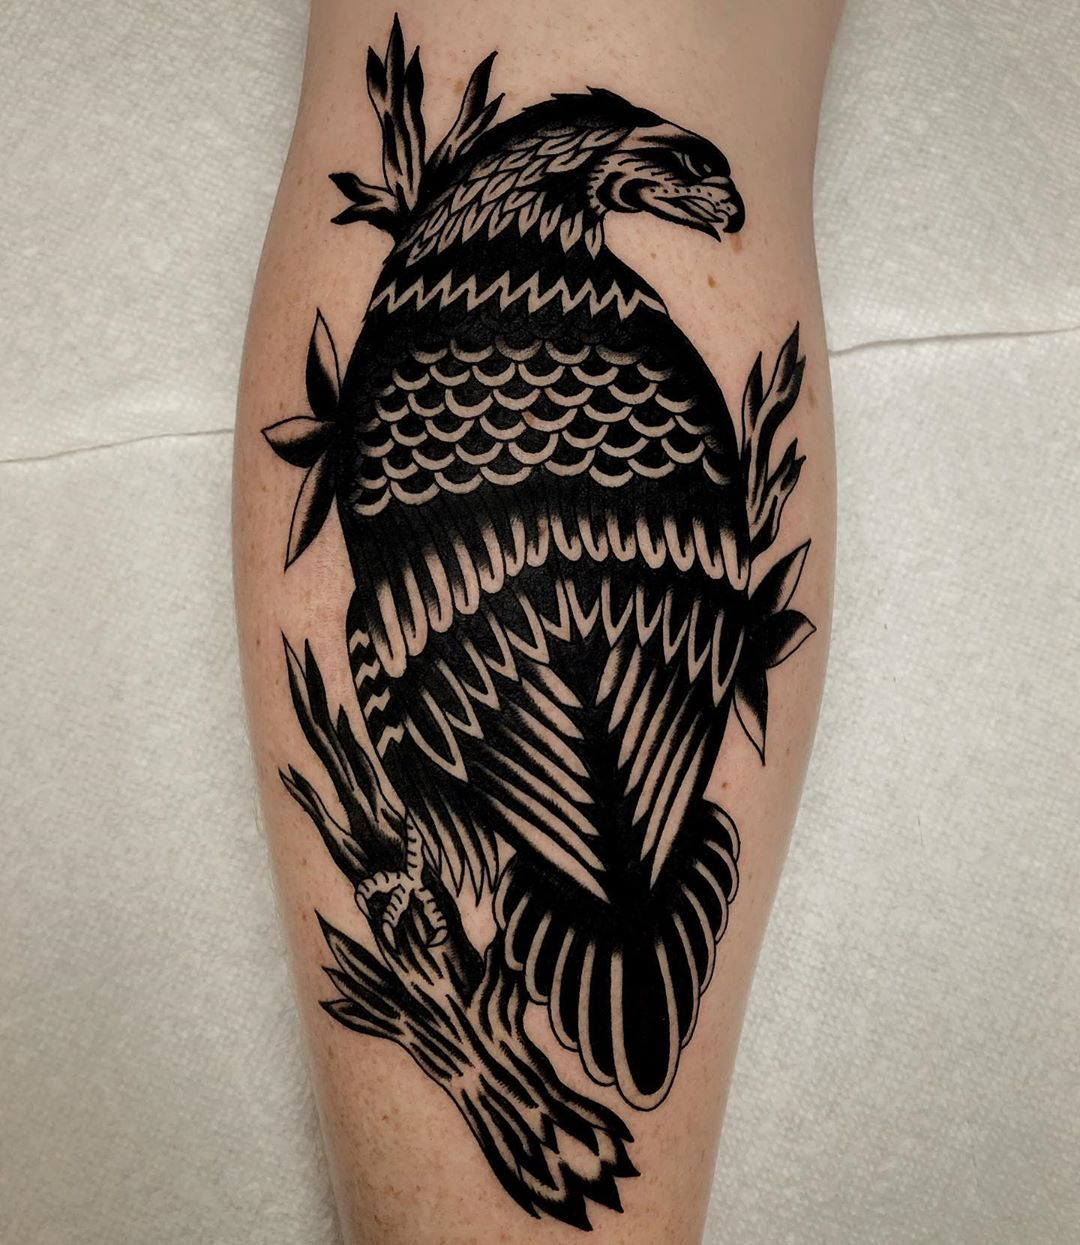 PROFESSOR.YORK Eagle tattoos, White ink, Tribal tattoos